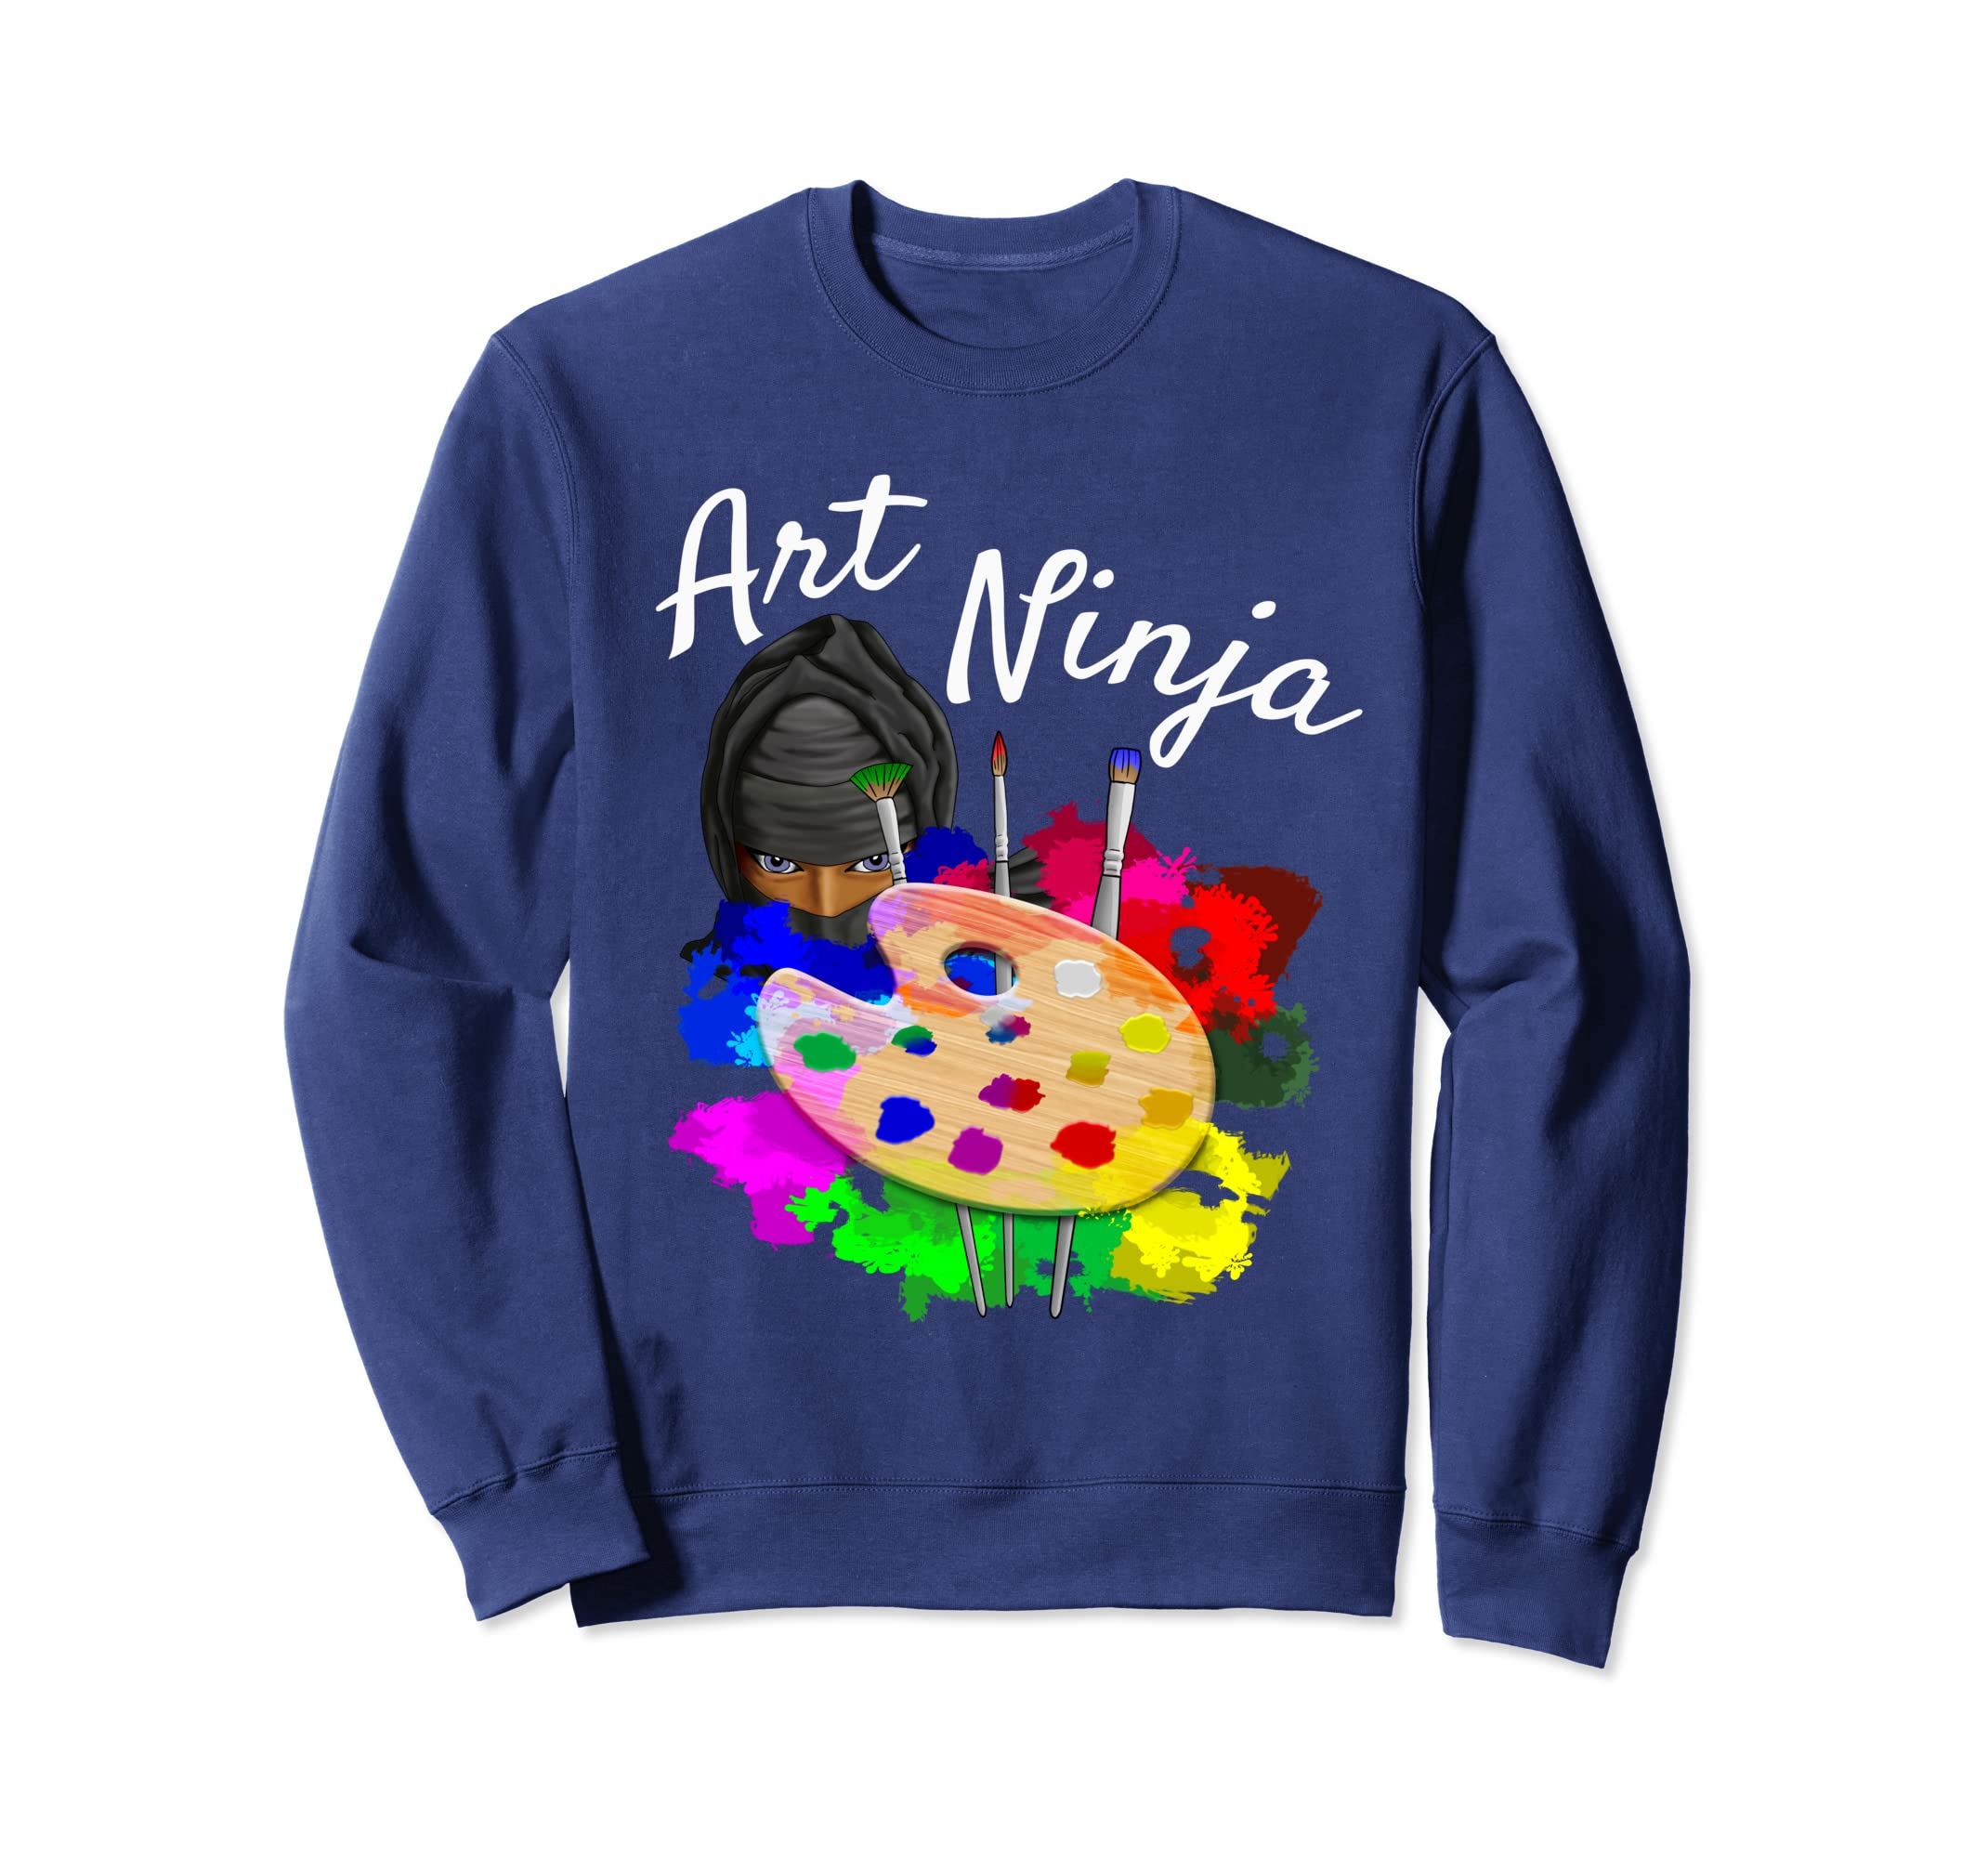 Amazon.com: Art Ninja Artist Sweatshirt: Clothing